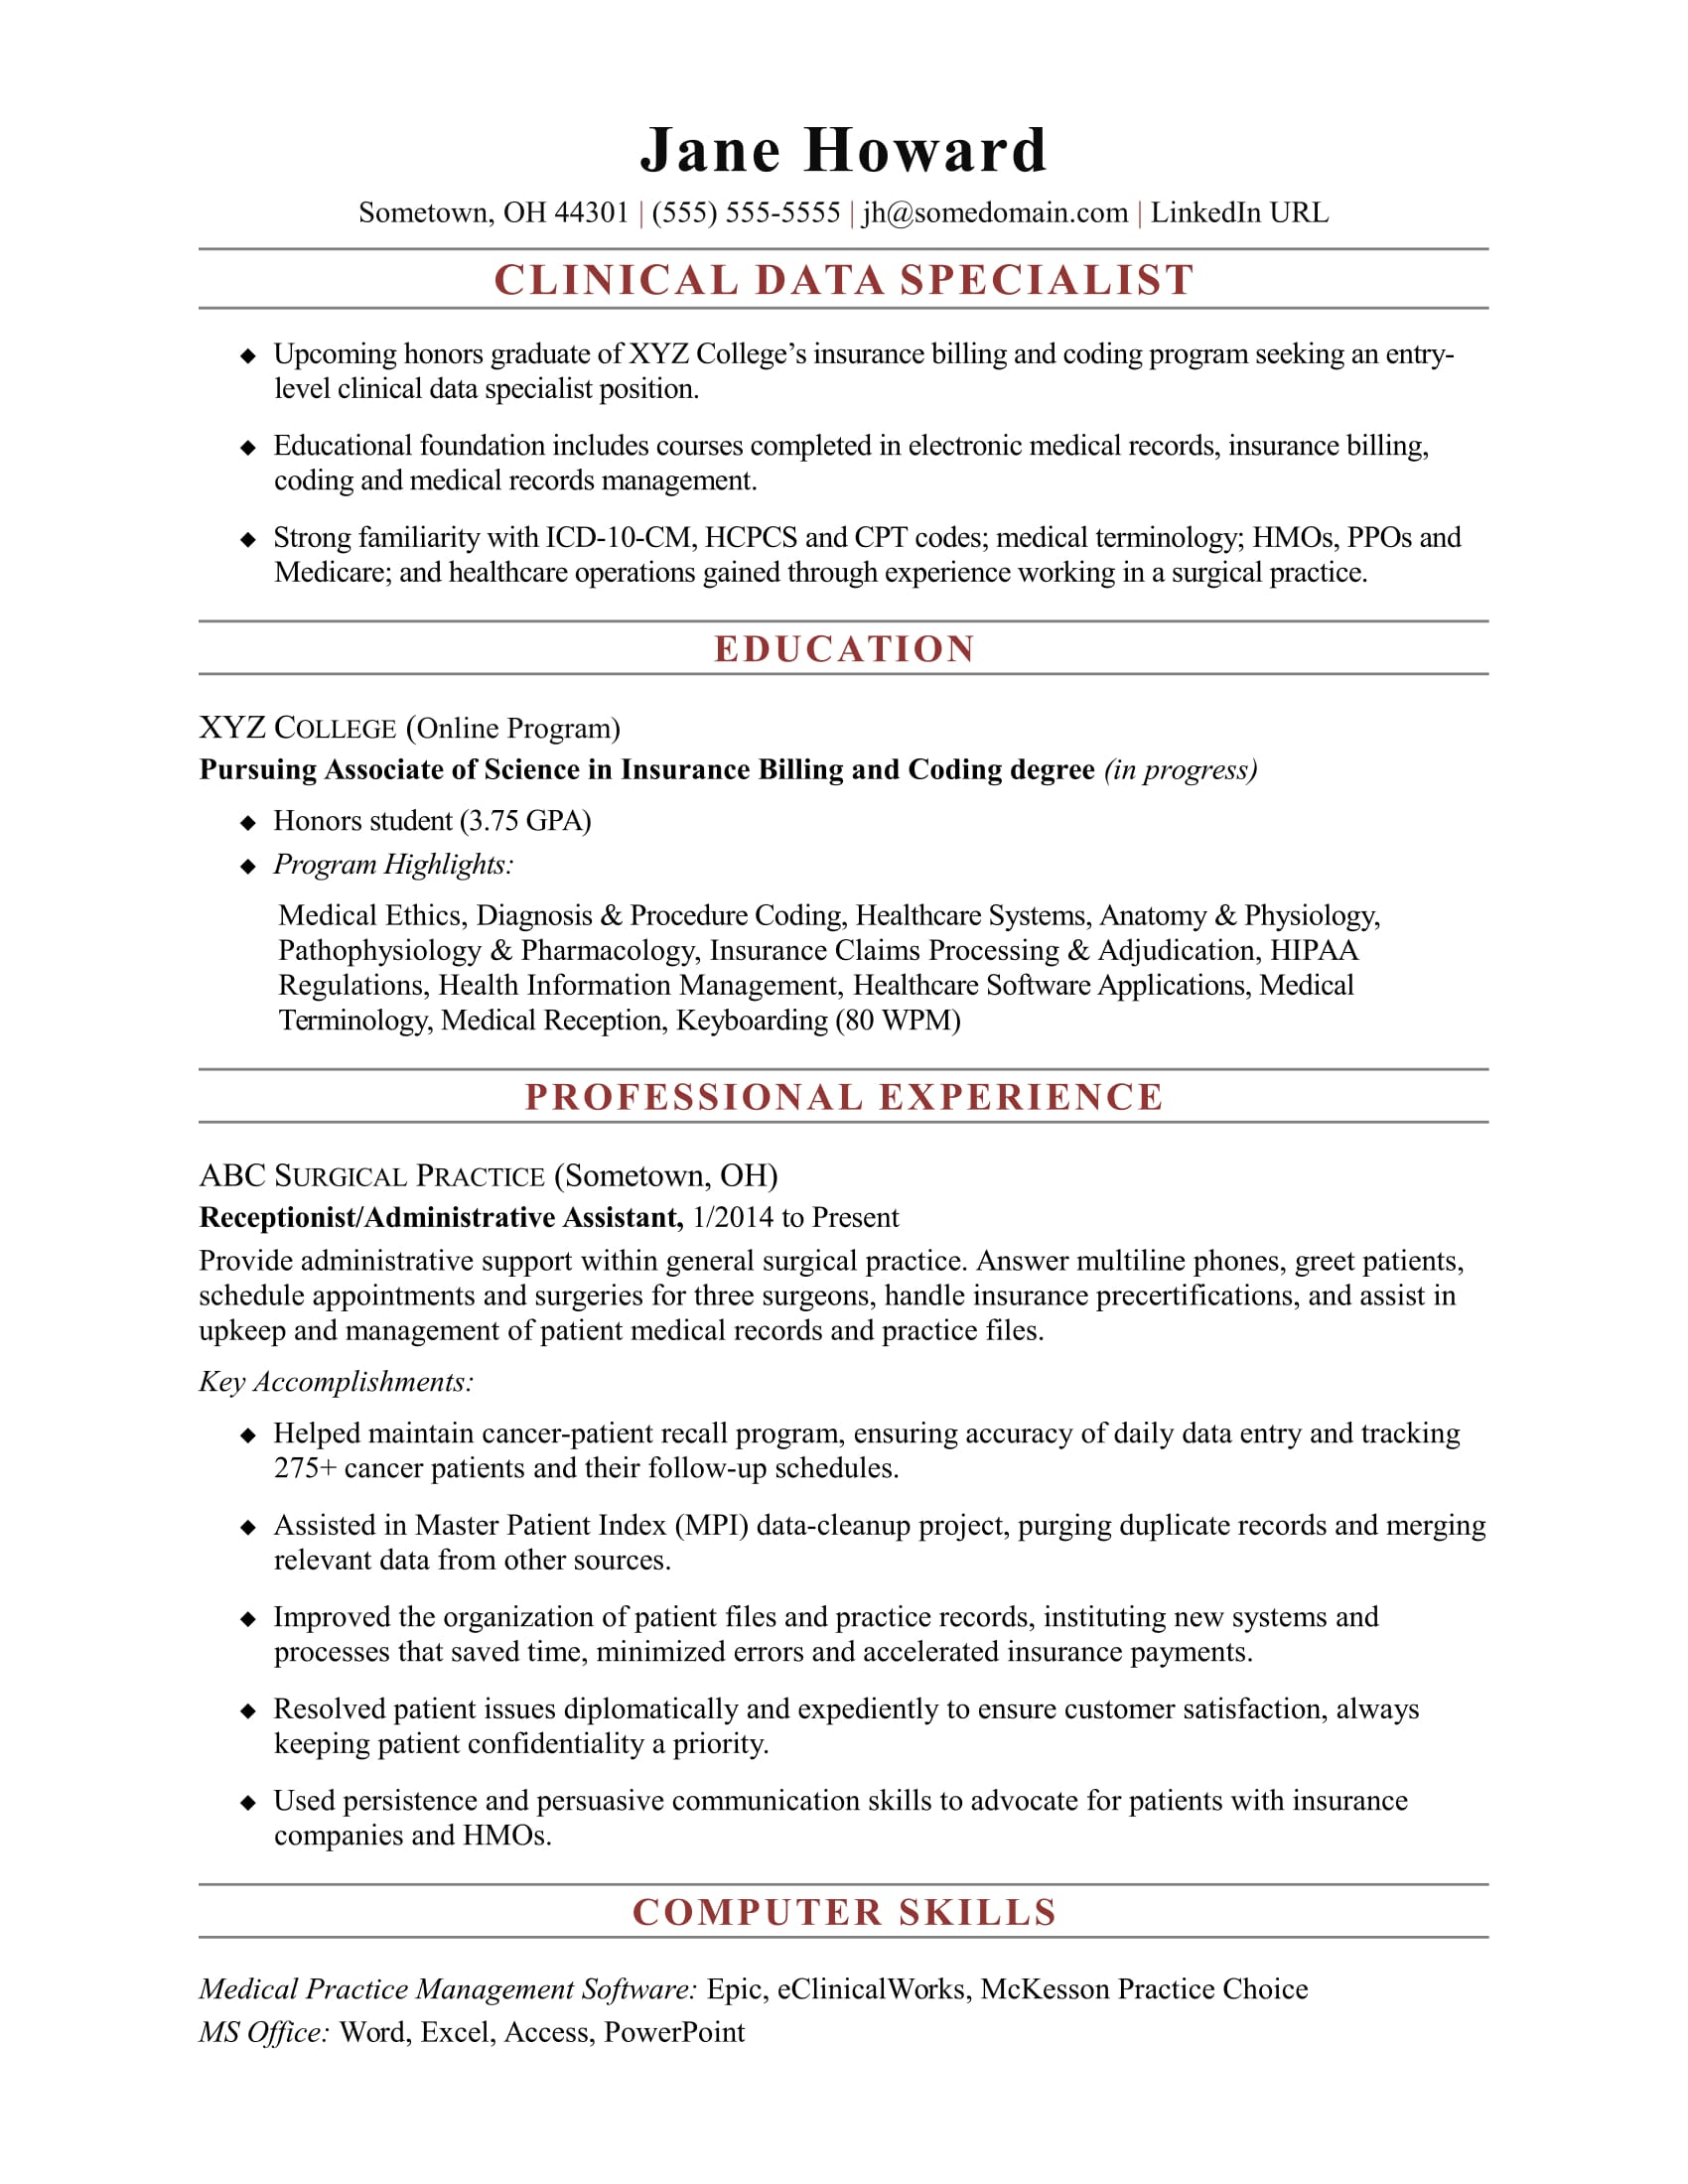 sample resume for an entry level clinical data specialist - How To Organize A Resume